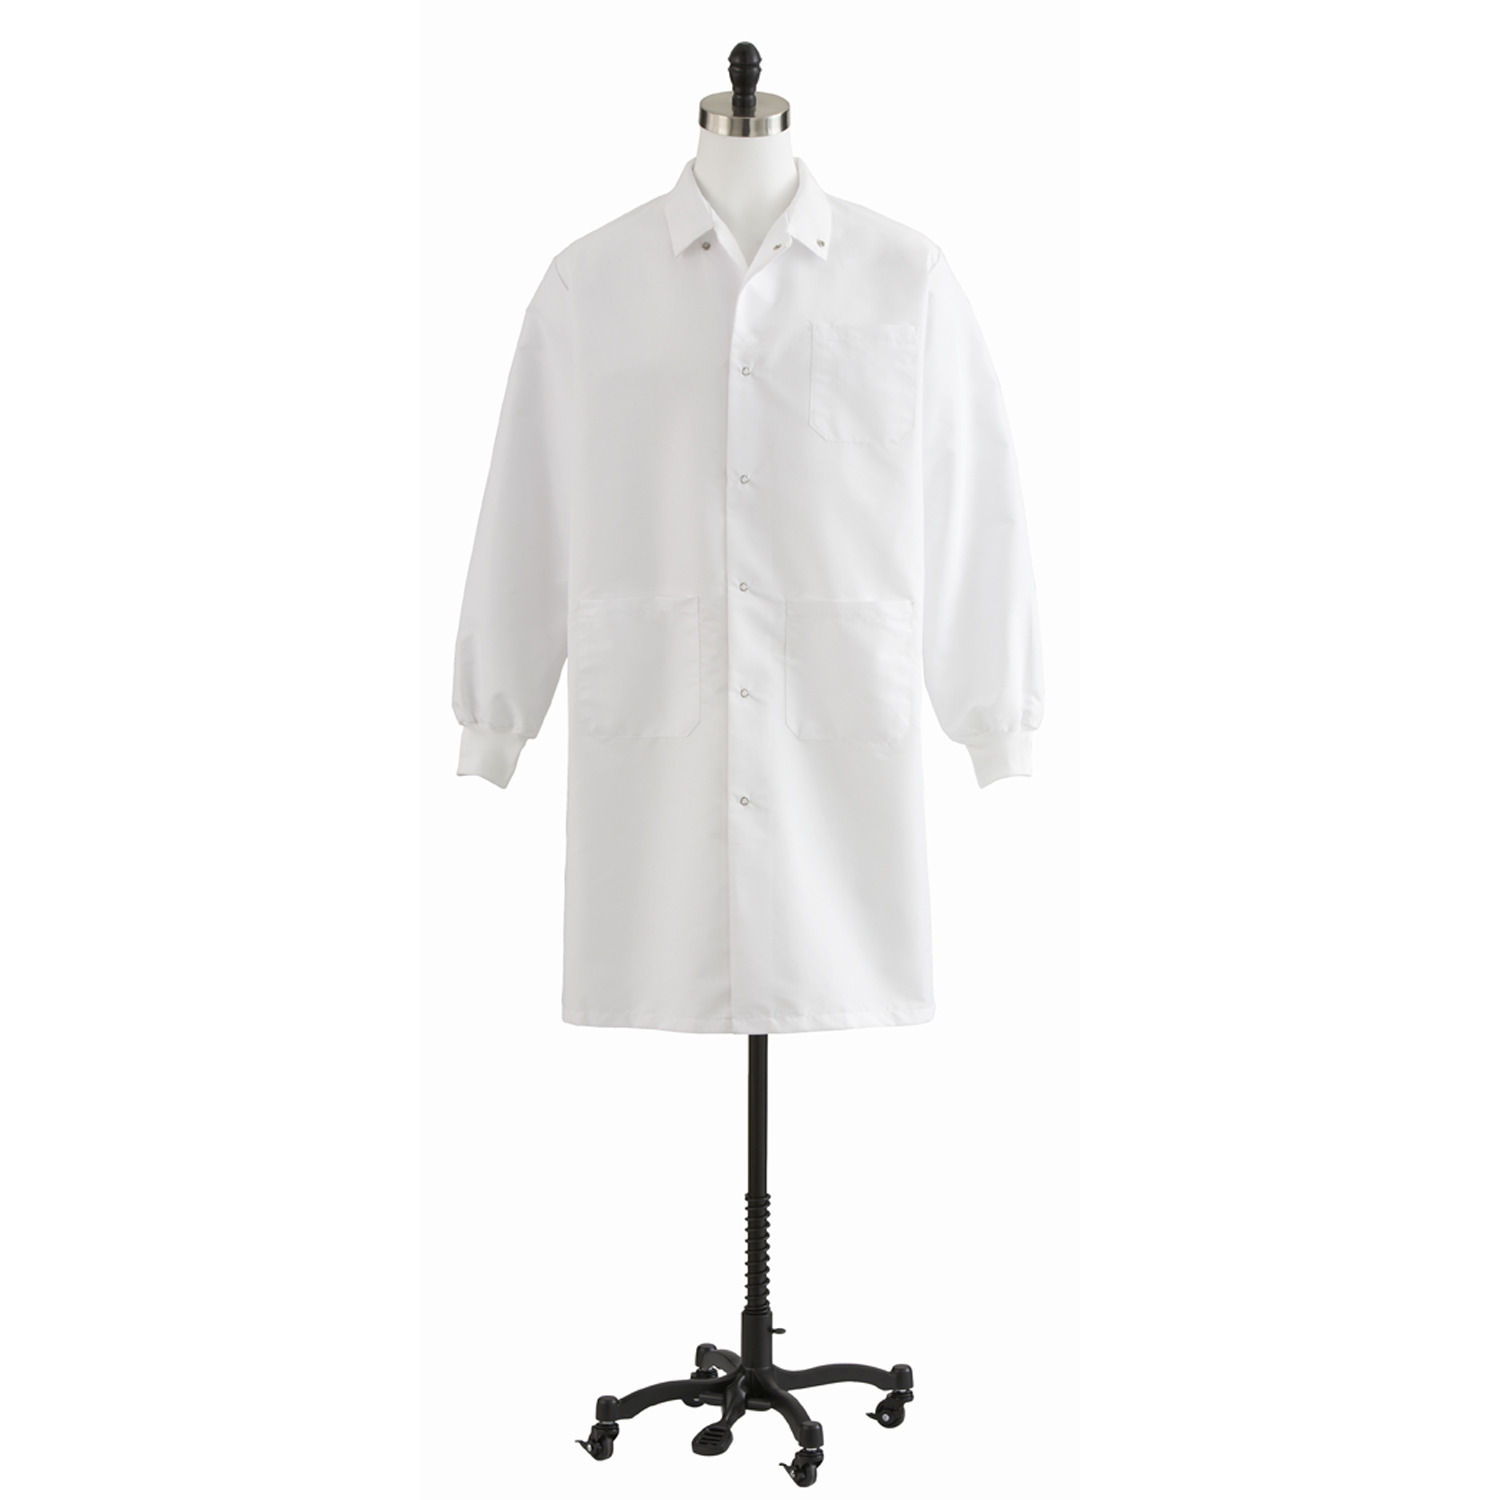 87026 Unisex Knee Length Lab Coat-Medline